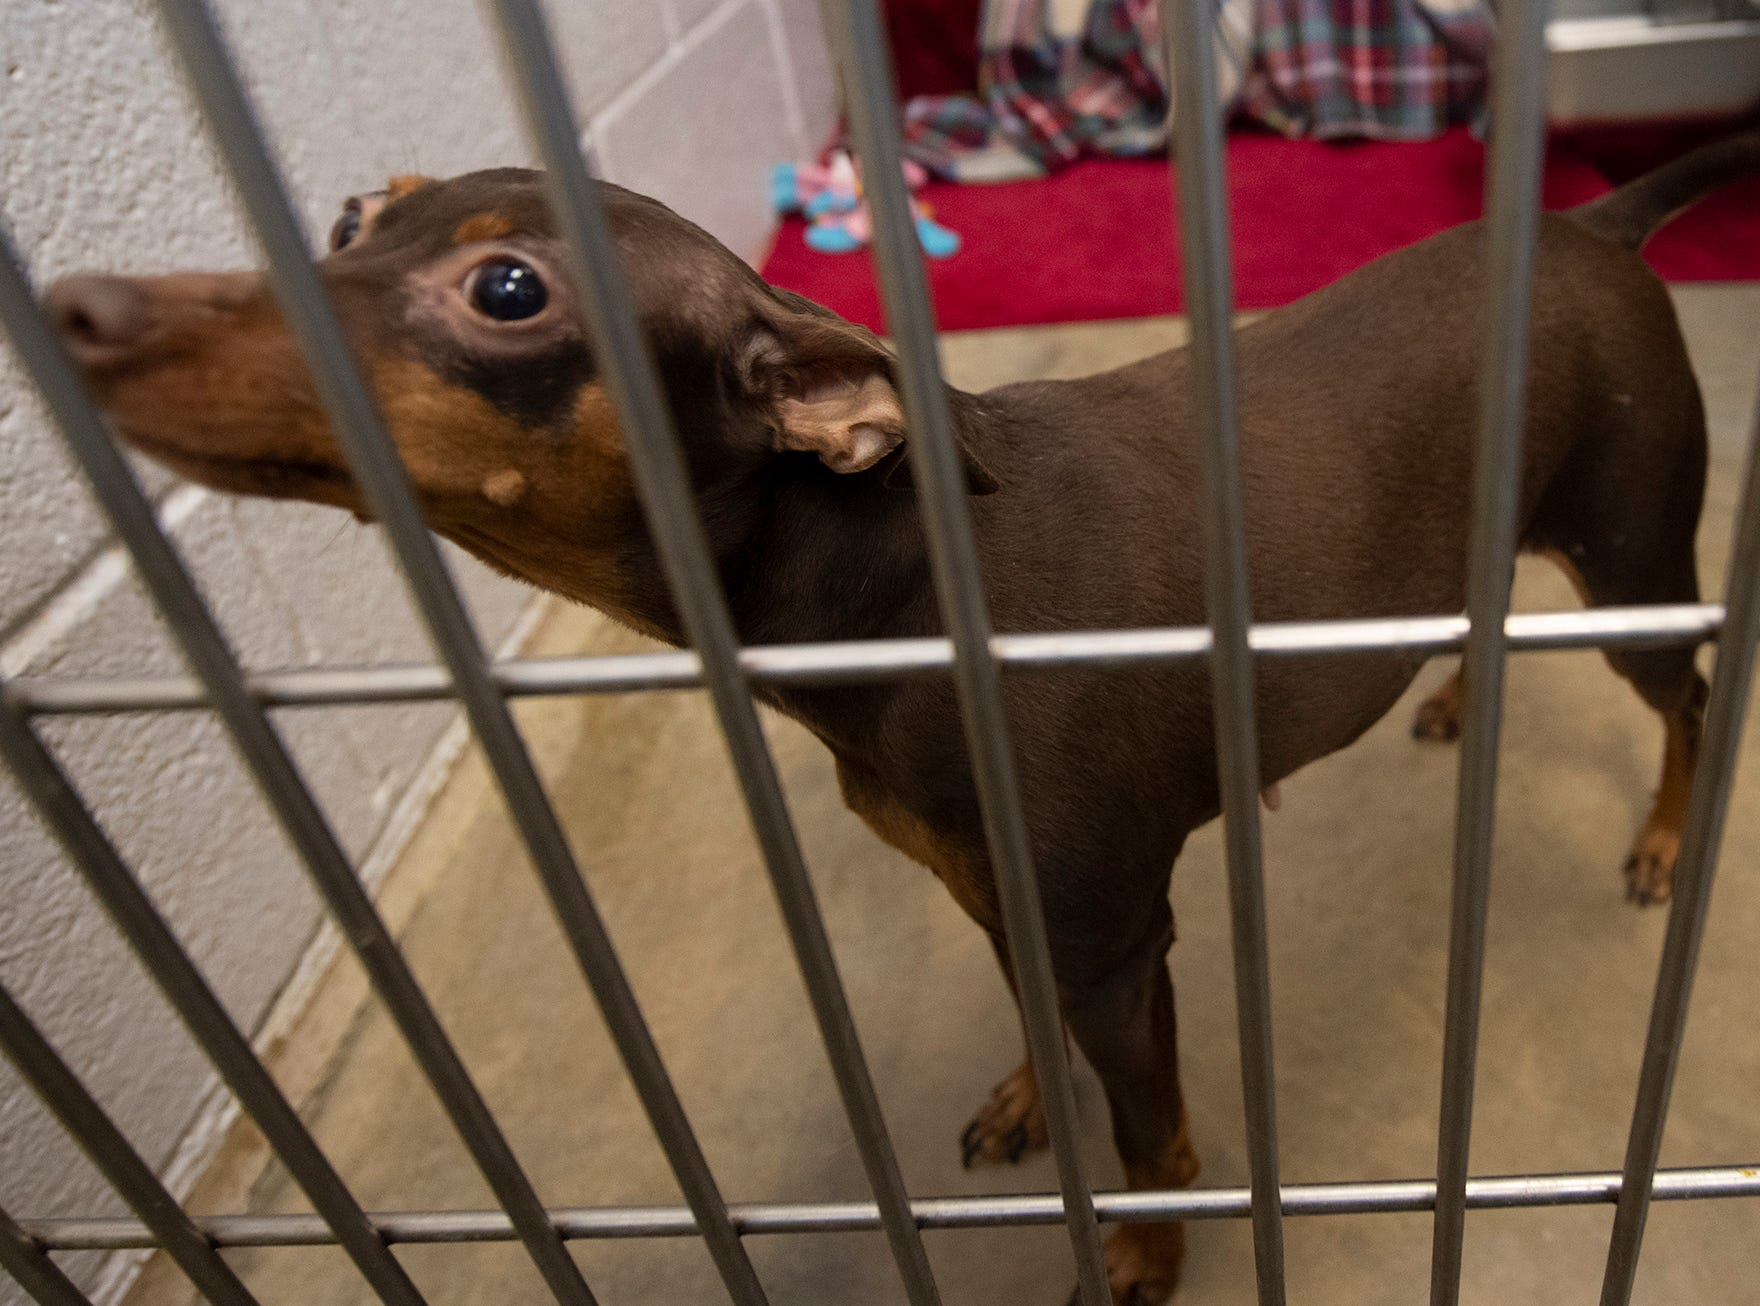 My name is Icy and I'm a Miniature Pinscher. I was brought to the shelter because because my owner's landlord would not allow me to stay. I lived with another dog and children and did well. I am very possessive with my food and my toys so someone with a little experience with this would really help me.